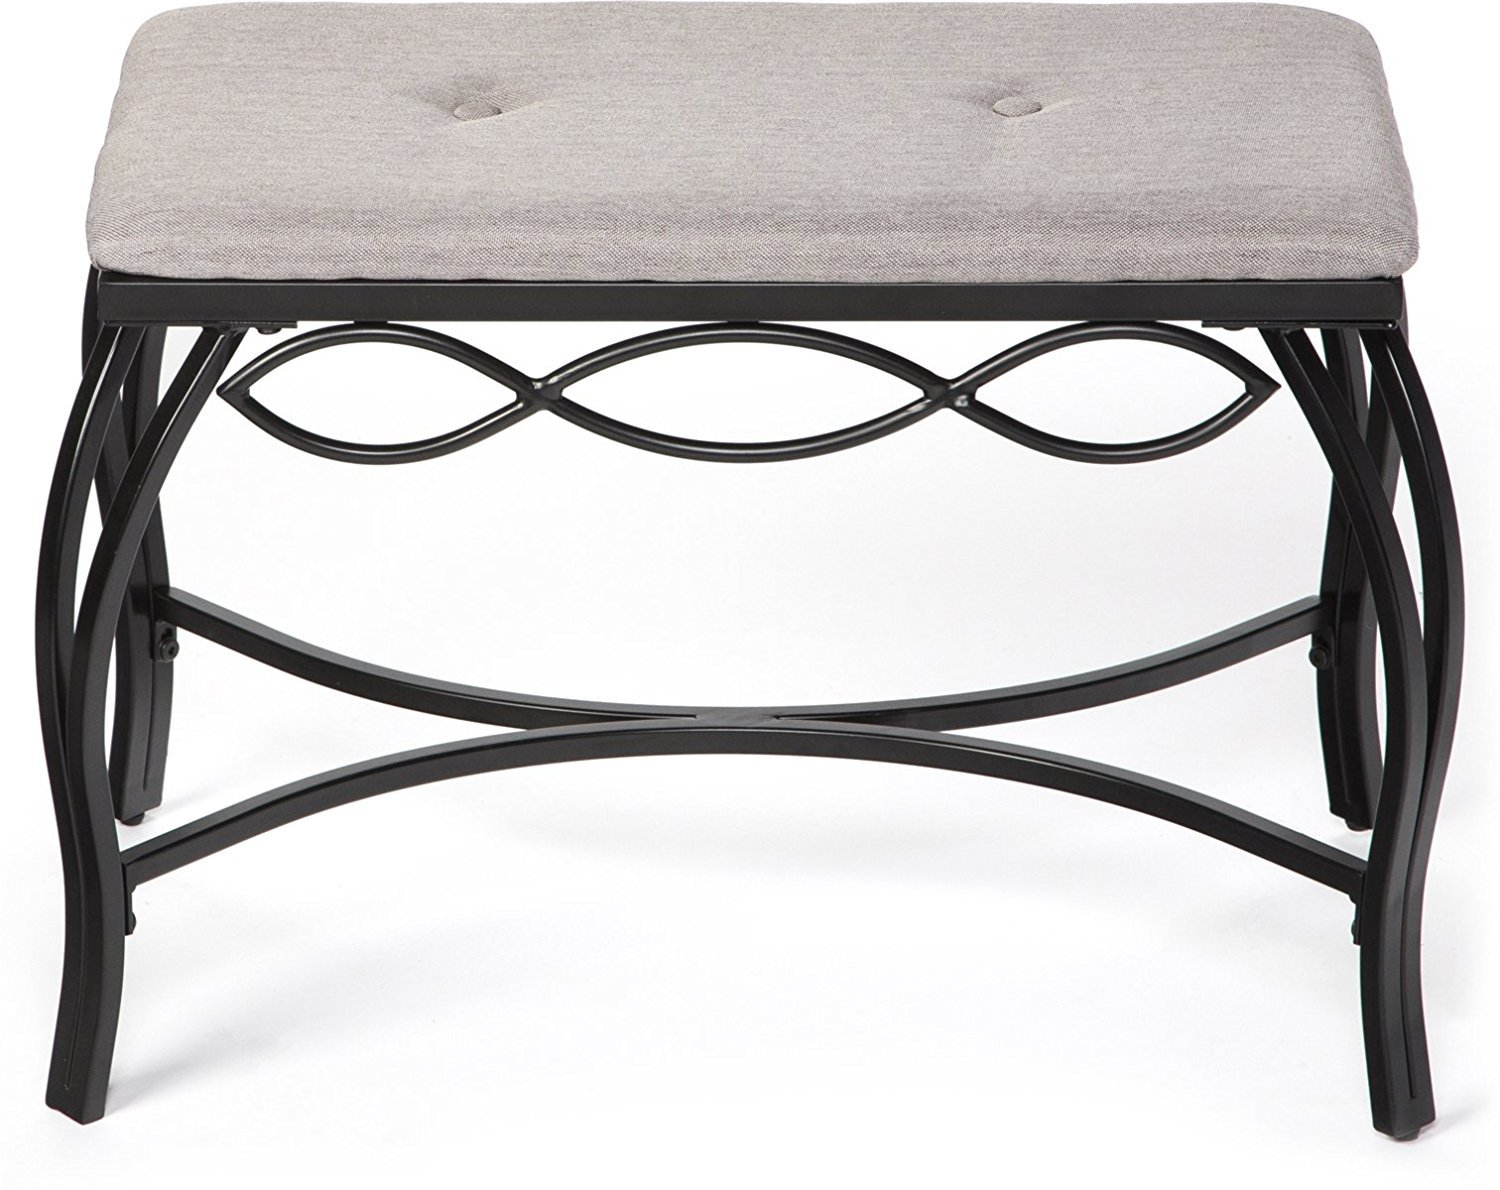 Mango Steam Bristol Shoe Bench - Heather Grey - Texture Woven Fabric Top and Durable Steel Legs